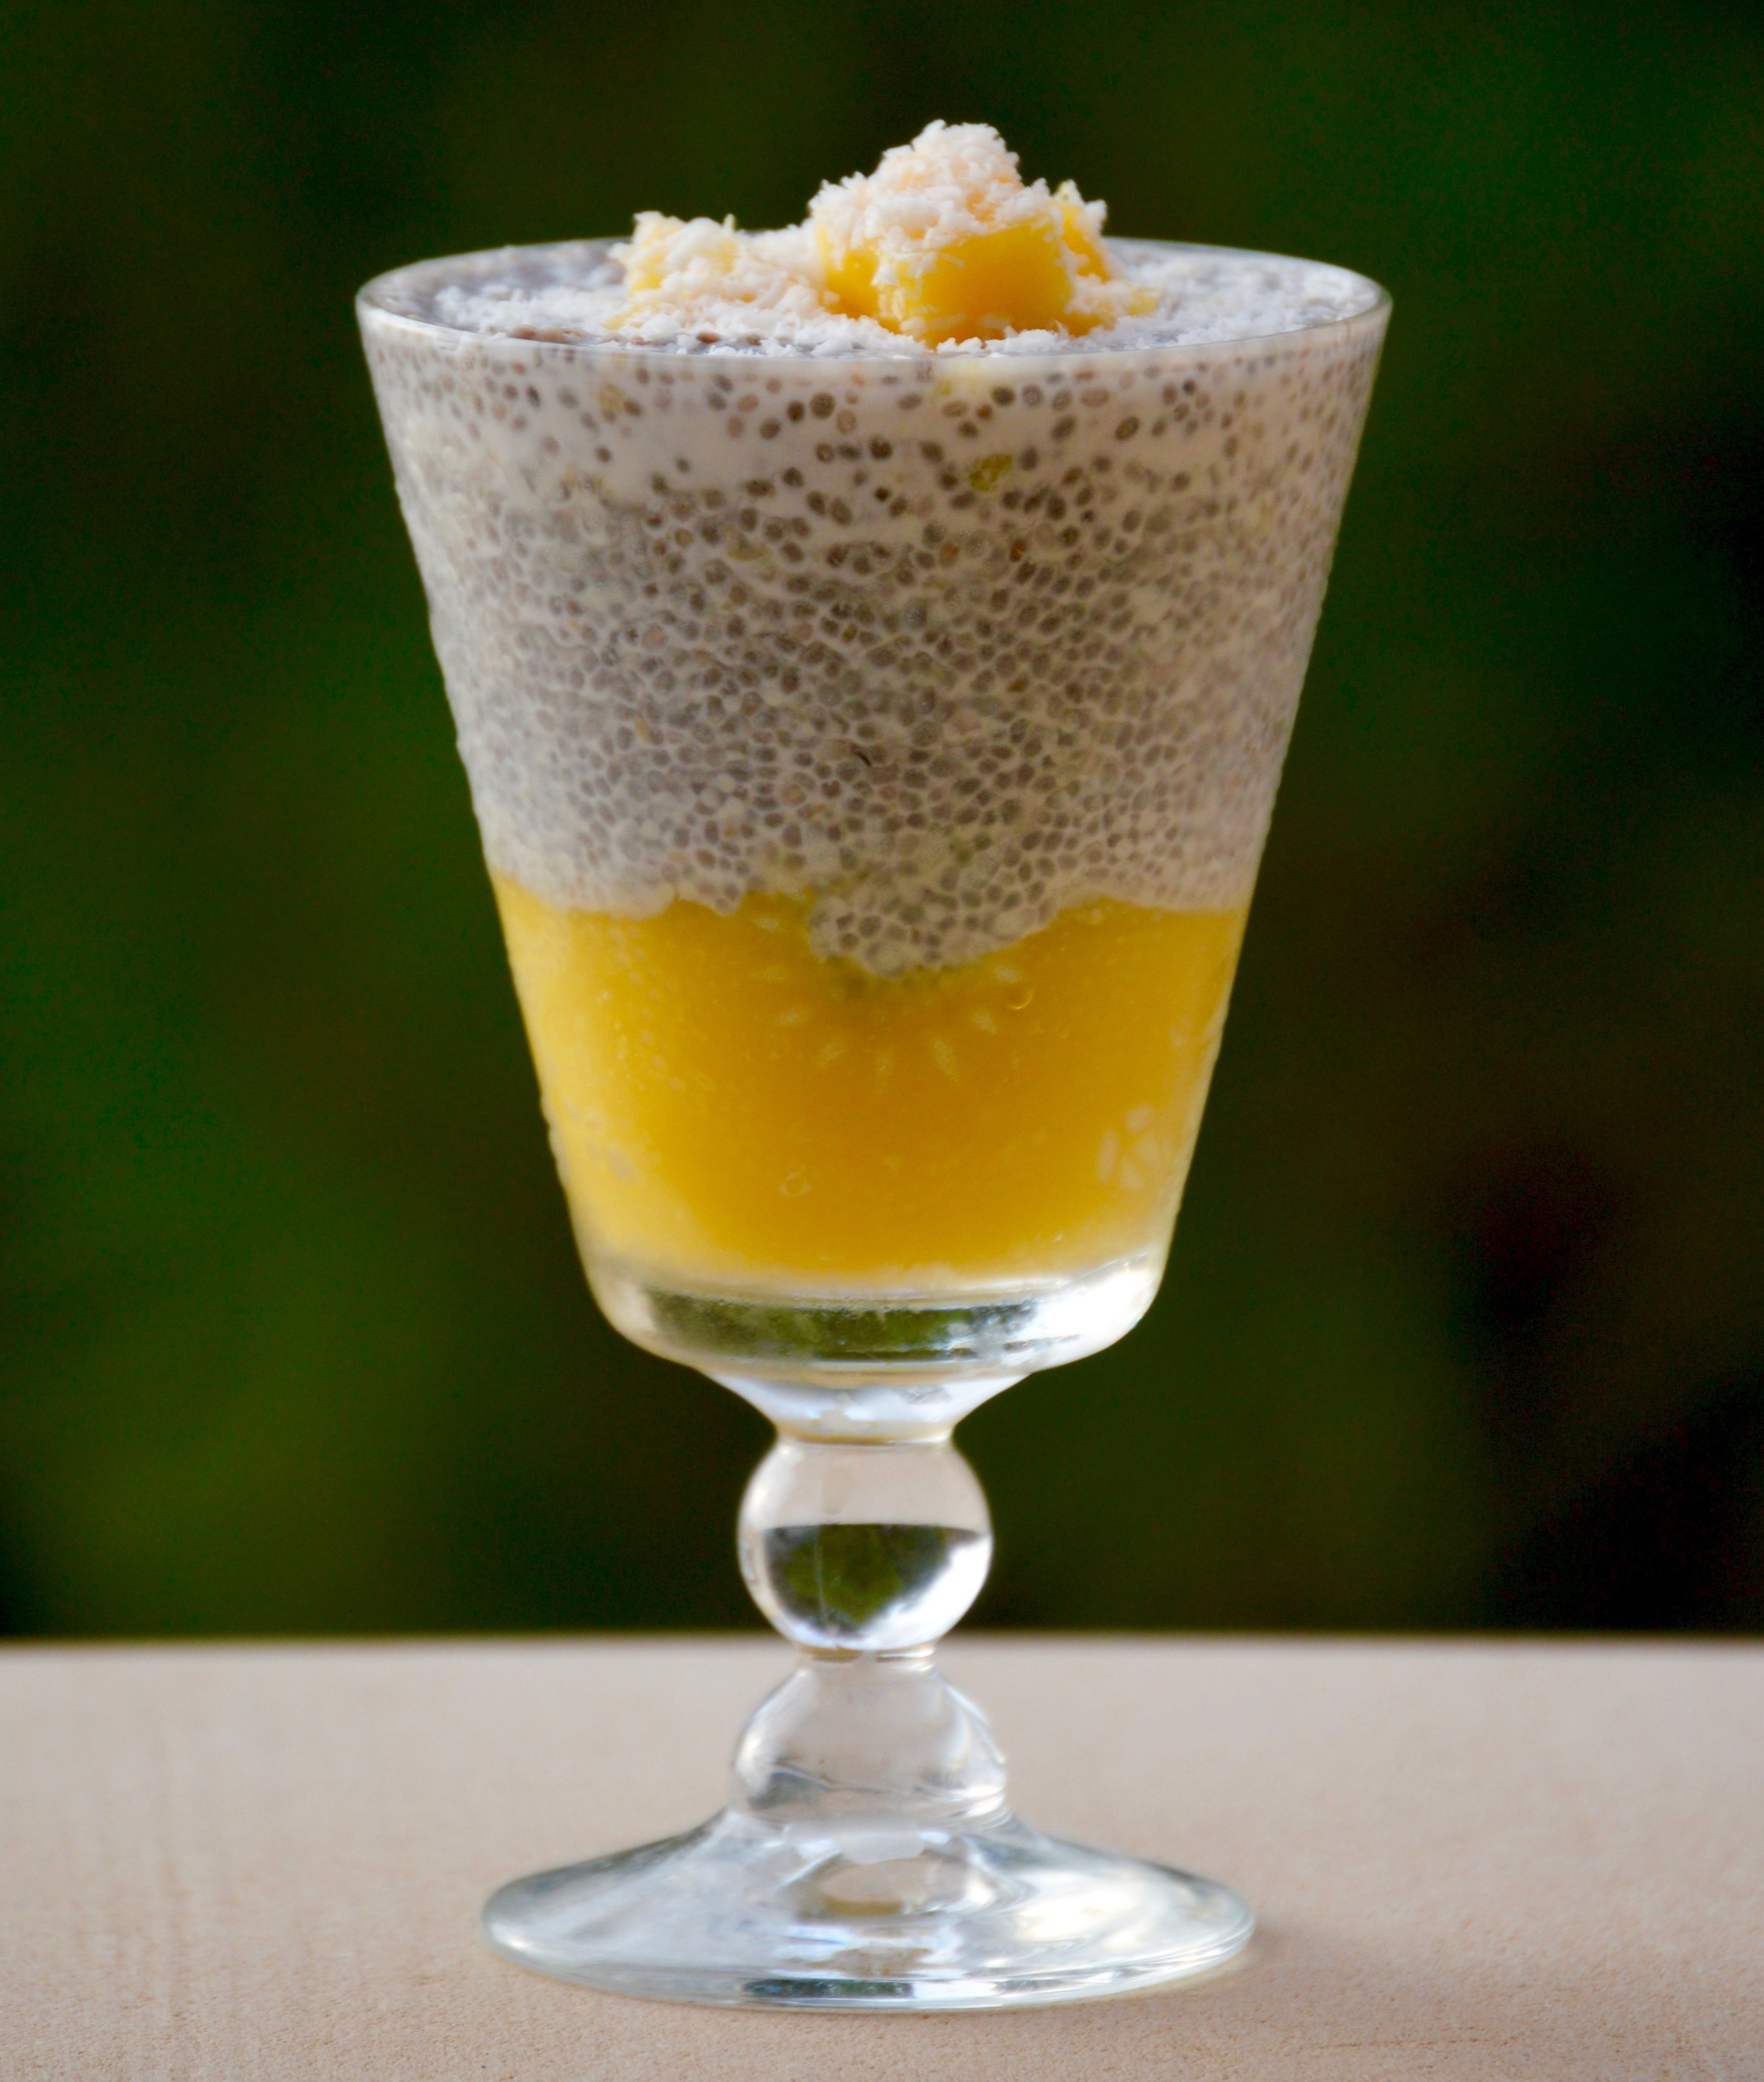 coconut cream mango puree chia pudding